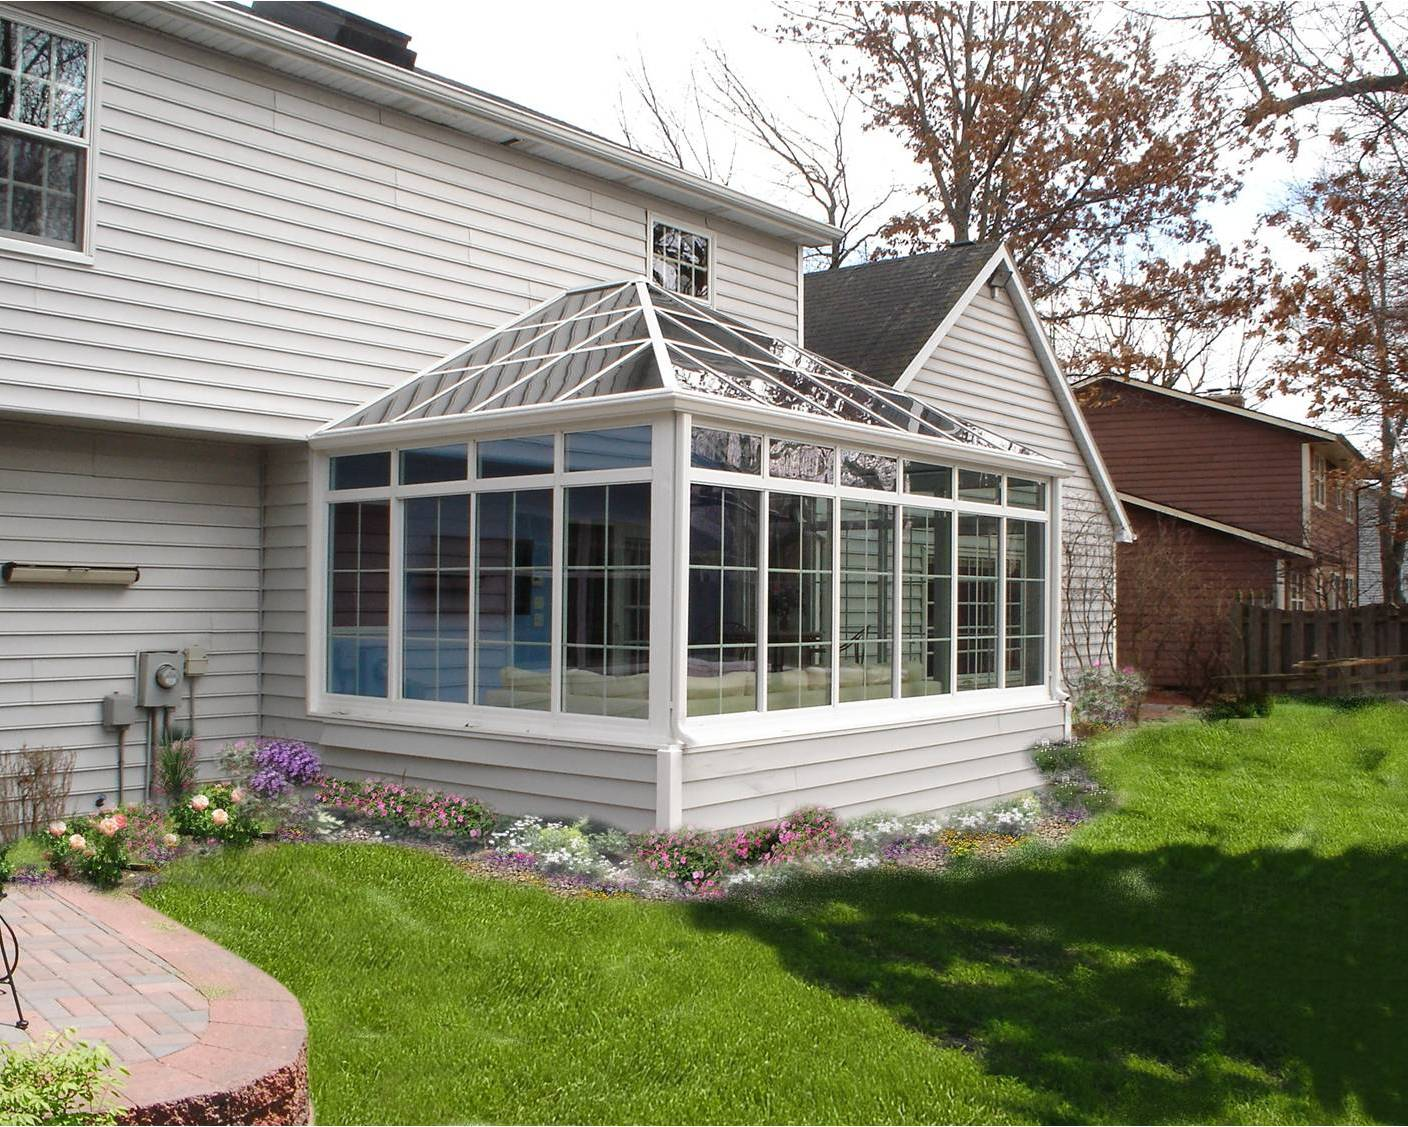 Photo gallery four seasons sunrooms 613 738 8055 for 4 season sunroom